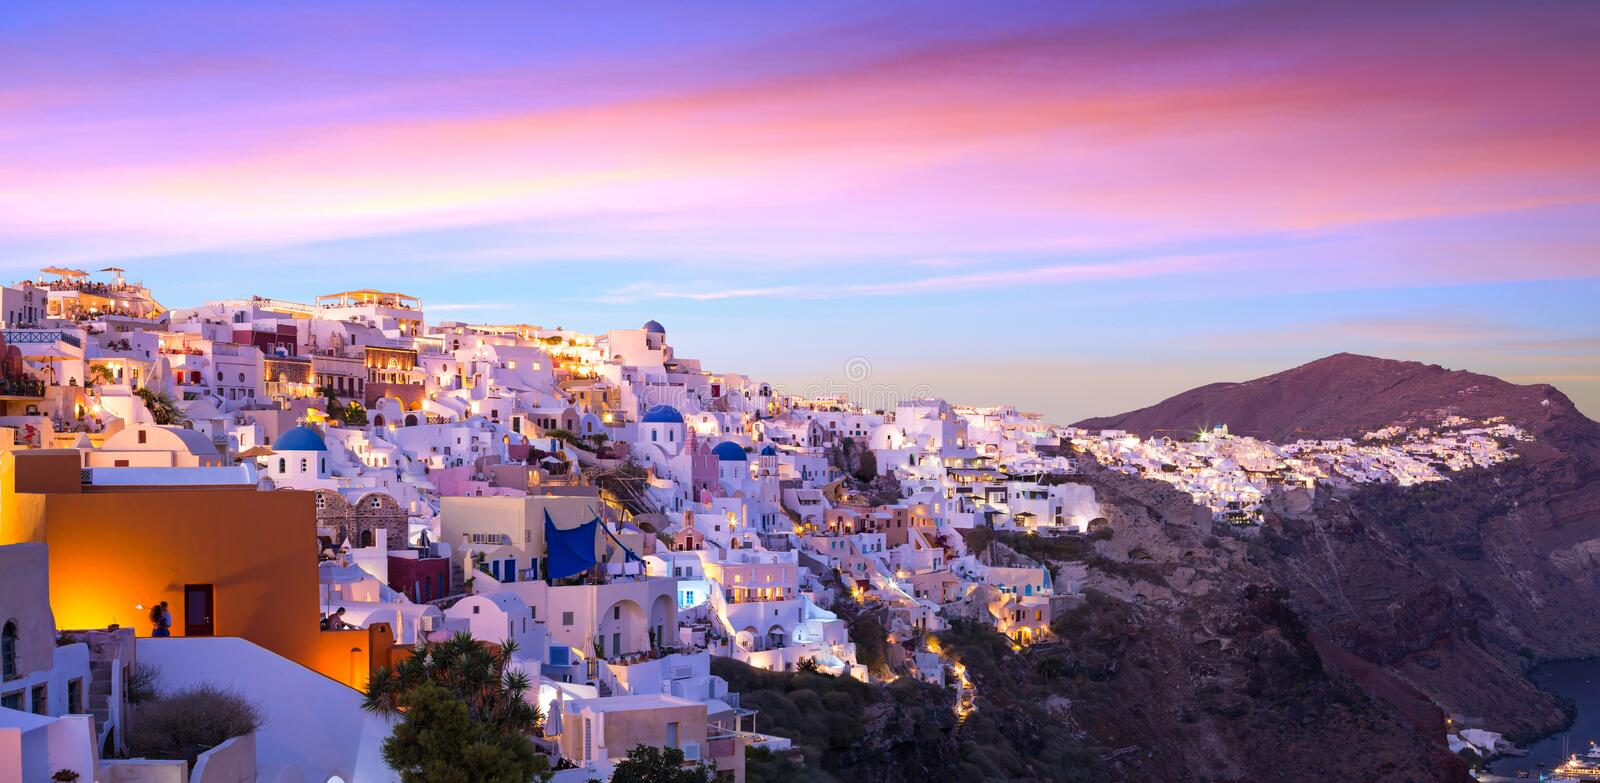 Download The Famous Sunset At Santorini In Oia Village Stock Photo - Image of europe, architecture: 106920130